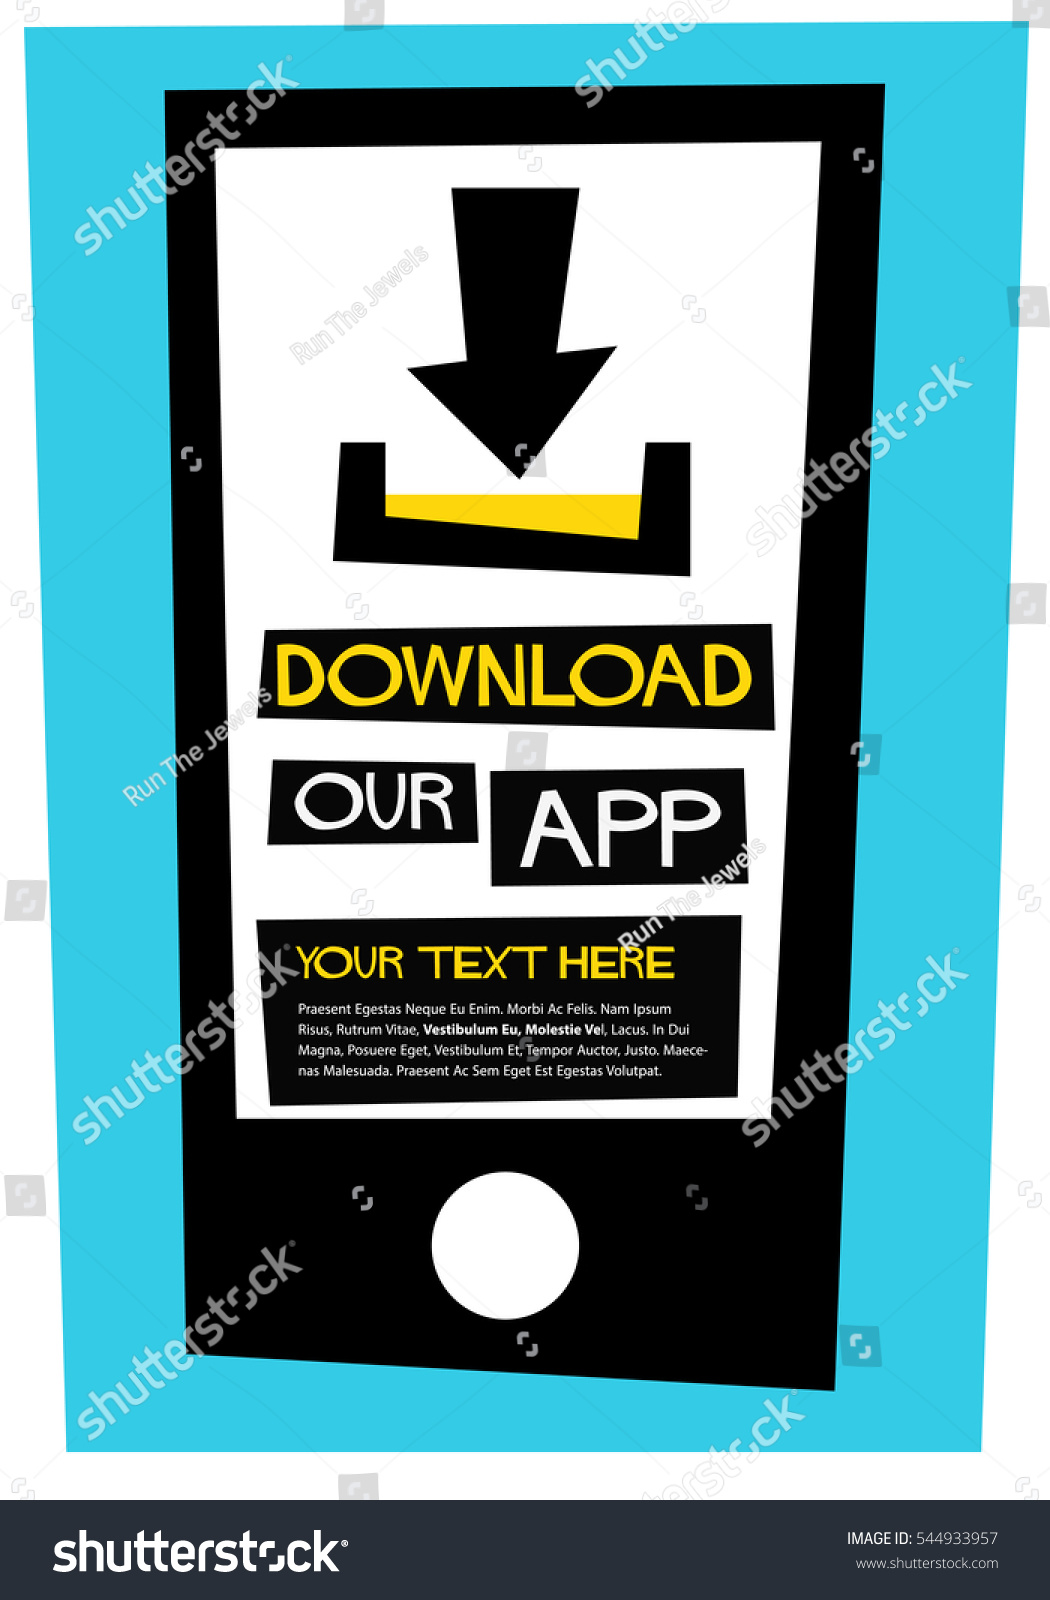 Poster design app - Download Our App Flat Style Vector Illustration Quote Poster Design With Text Box Template